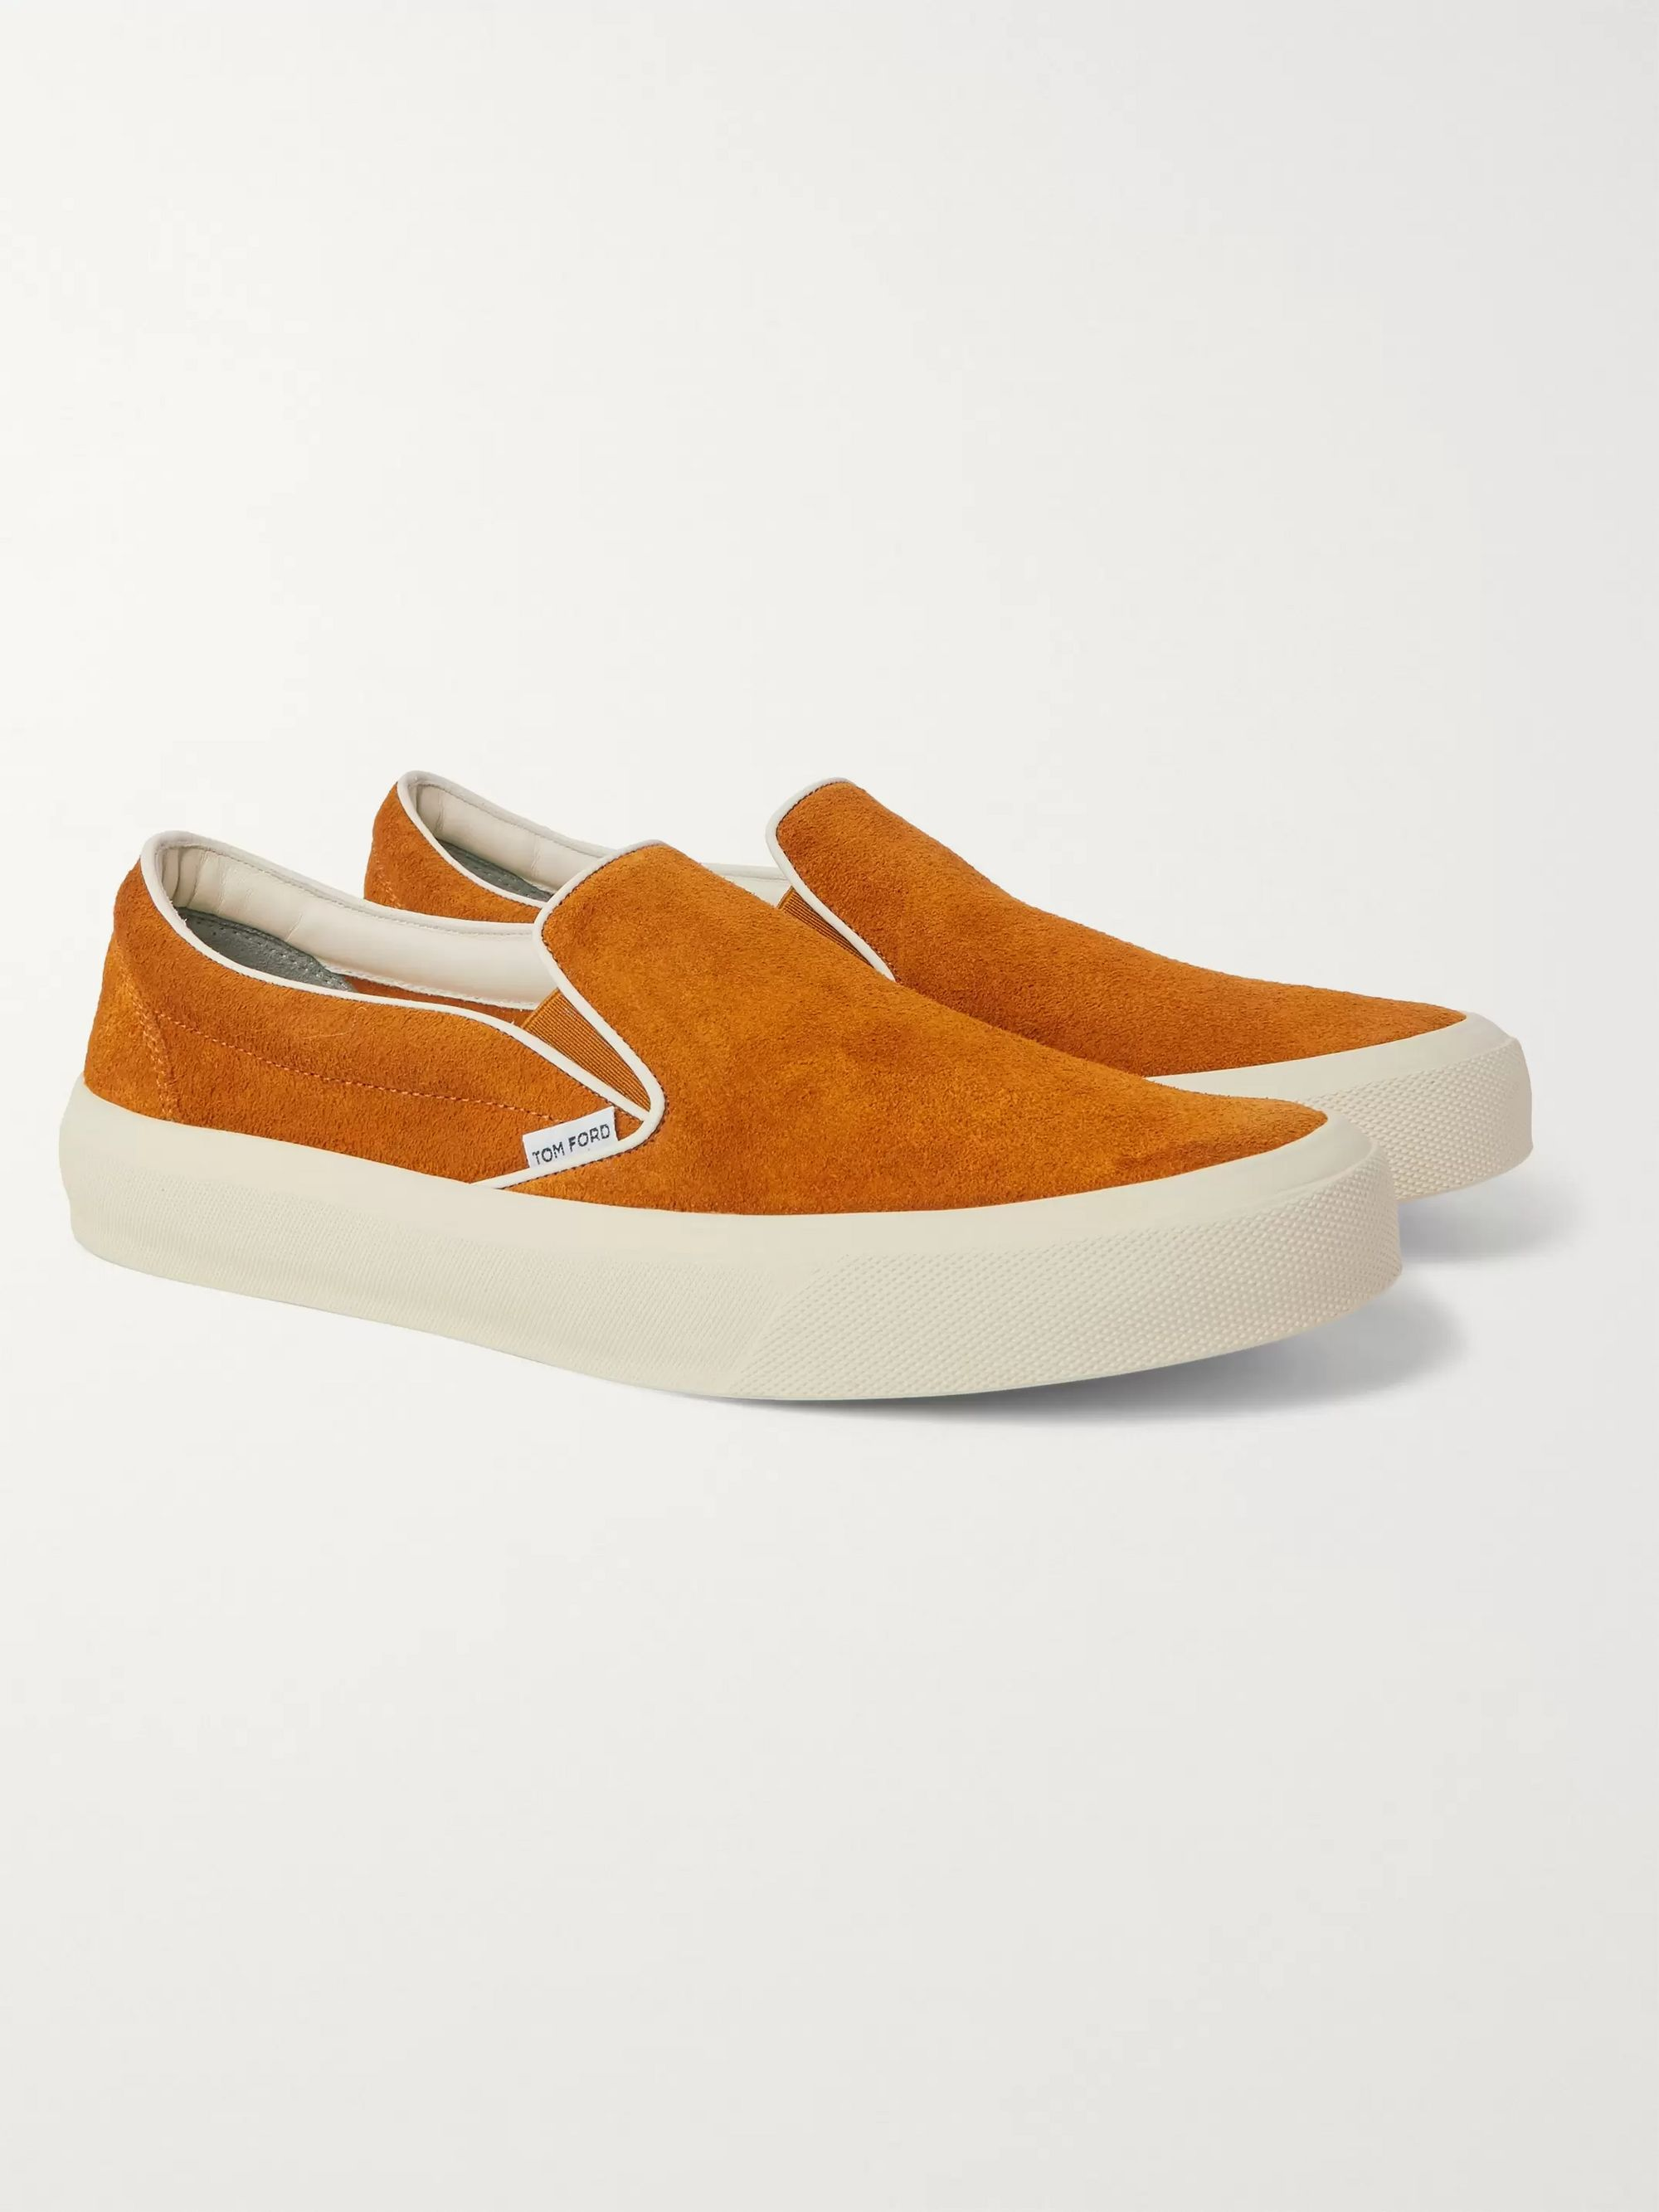 TOM FORD Cambridge Leather-Trimmed Suede Slip-On Sneakers